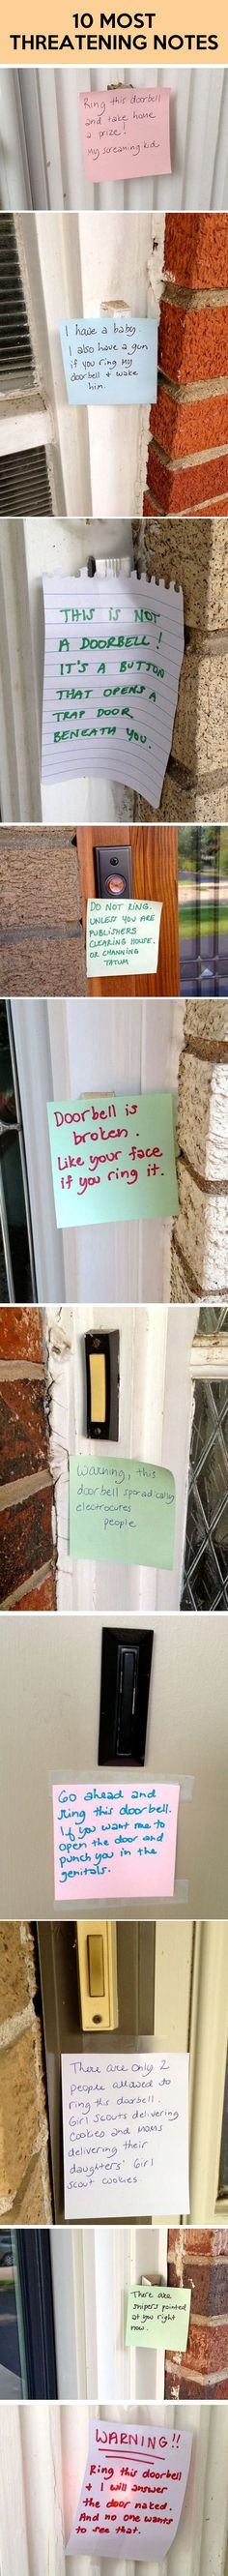 Yikes - desperate, sleep-deprived moms? Have you ever written a threatening note on your doorbell because your little one is finally down for their nap?